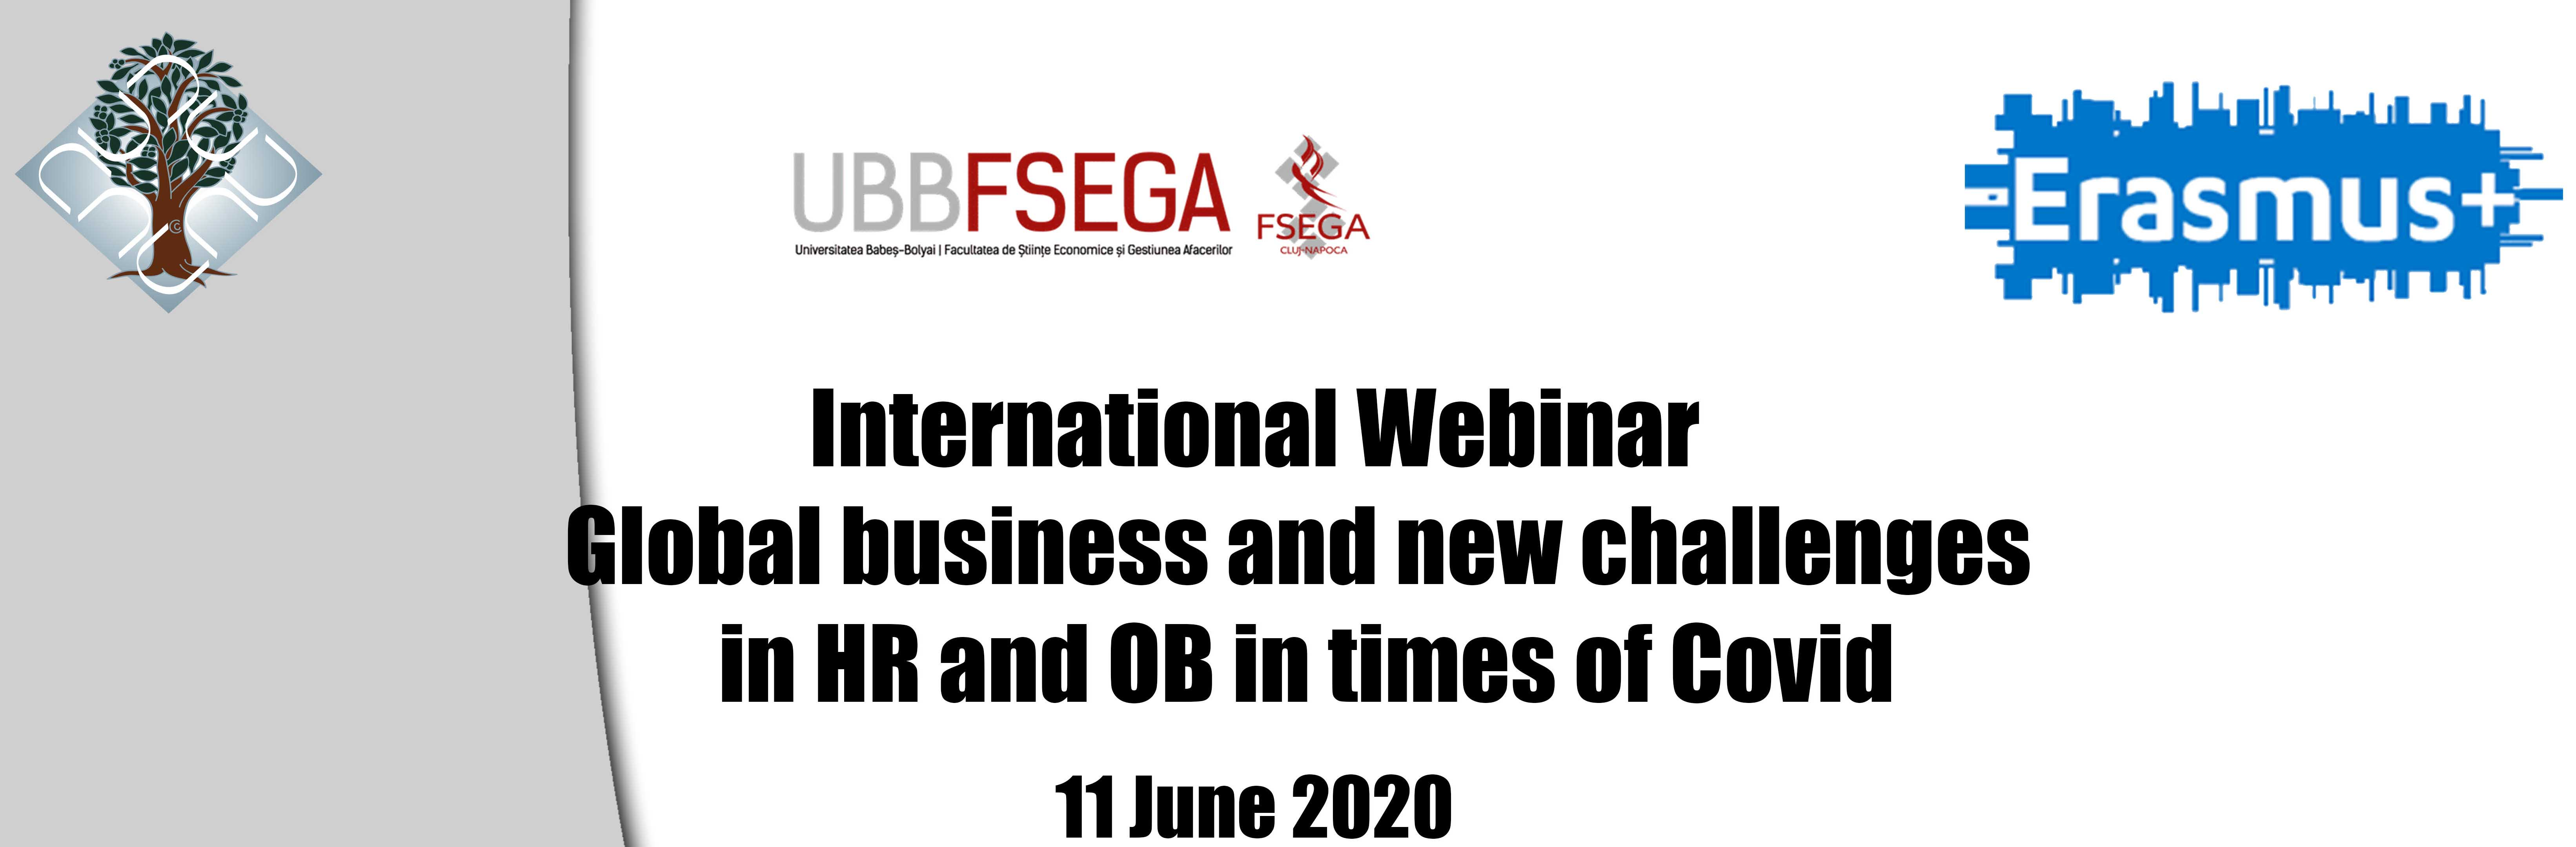 International Webinar Global Business and new challenges in HR and OB in times of Covid